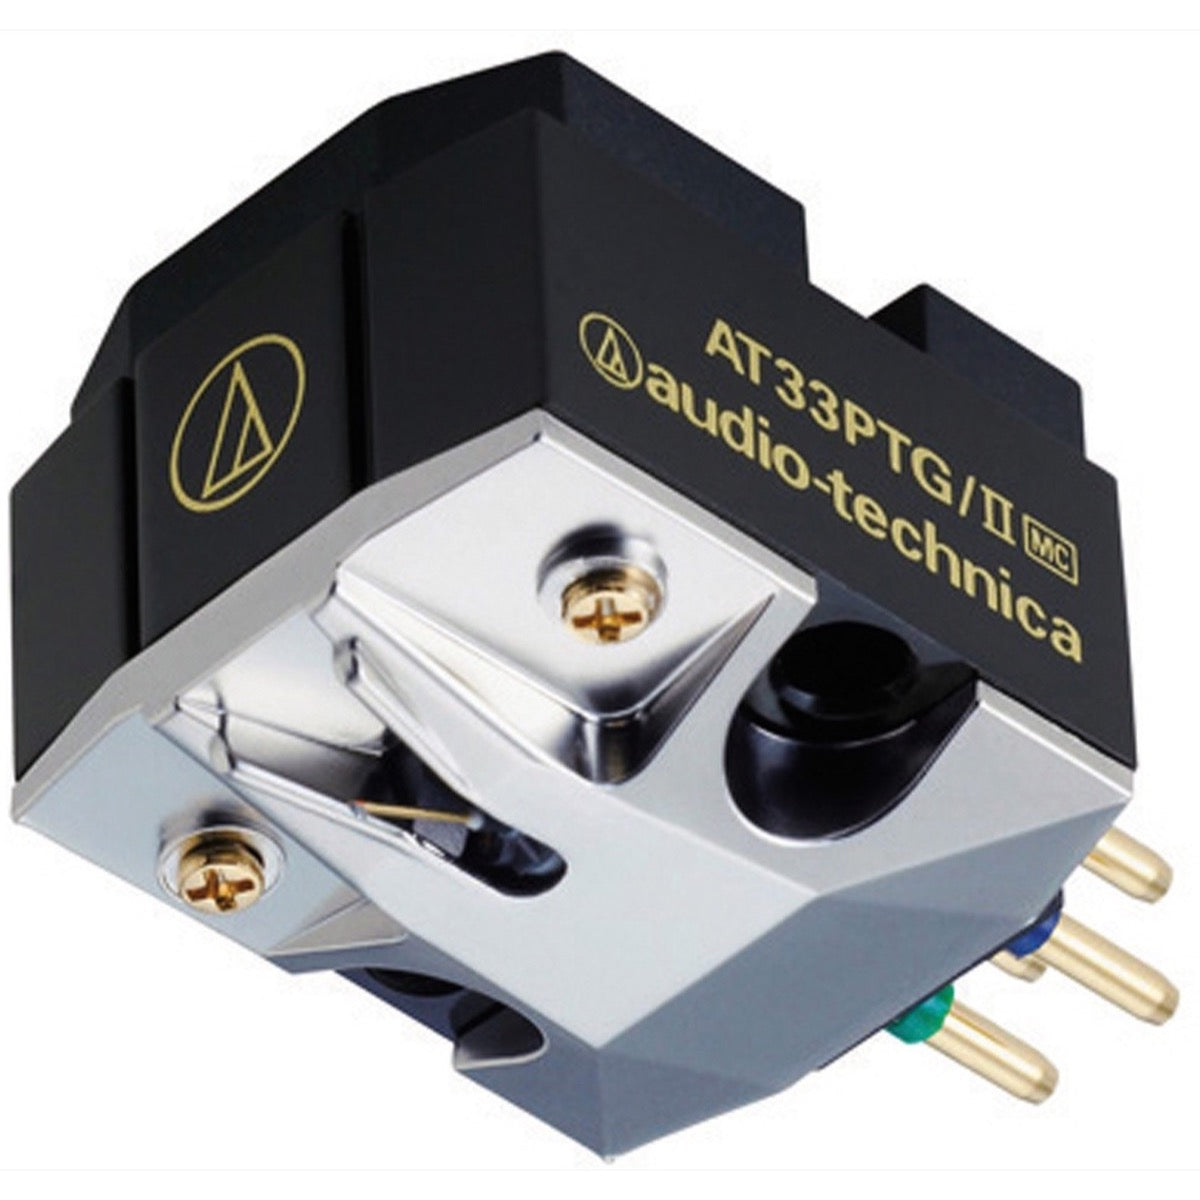 Audio-Technica AT33PTGII Dual Moving Coil Cartridge